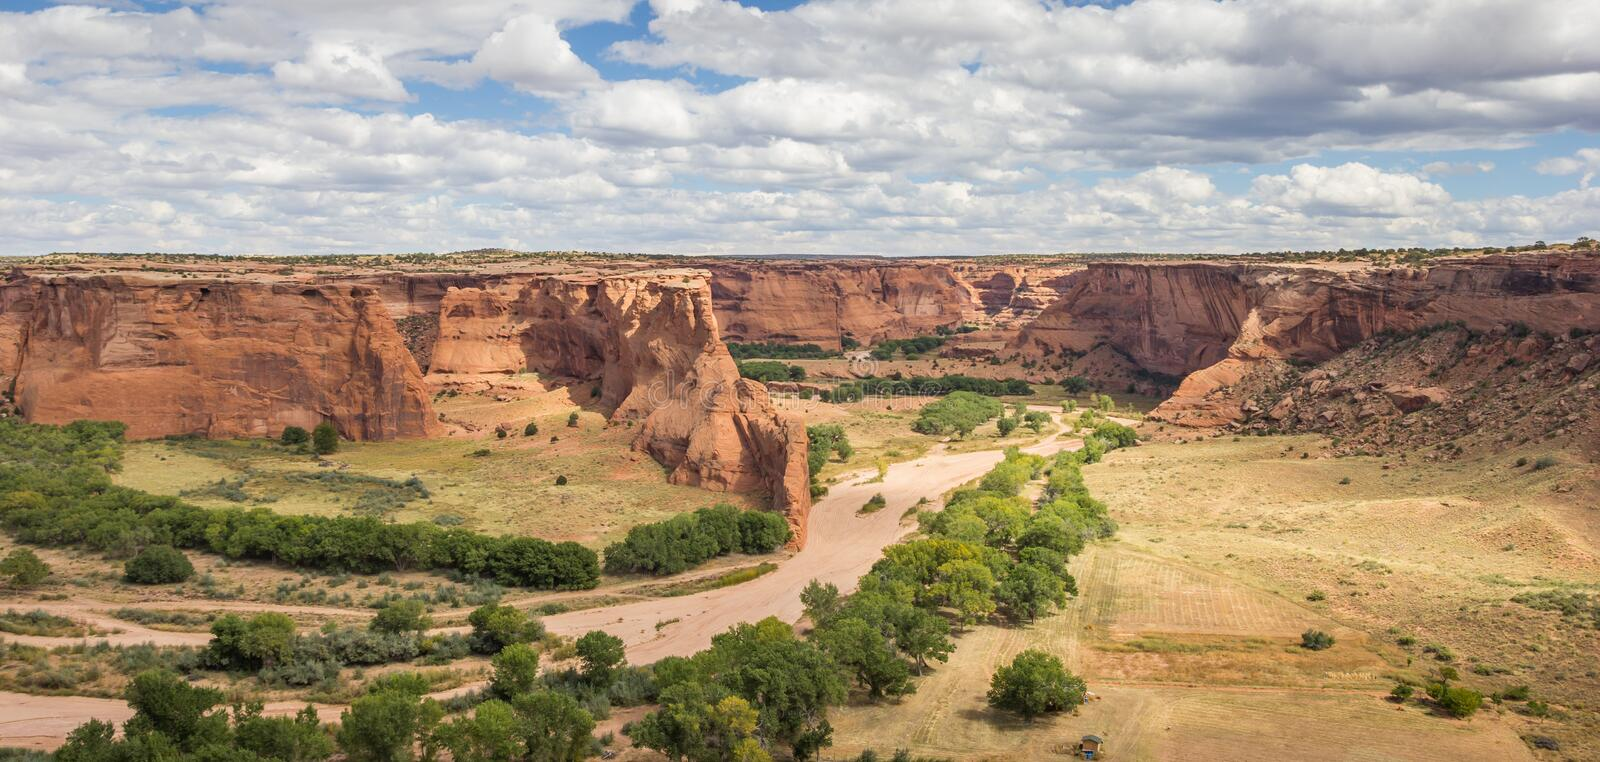 Panorama von Nationaldenkmal Canyon de Chelly stockfoto